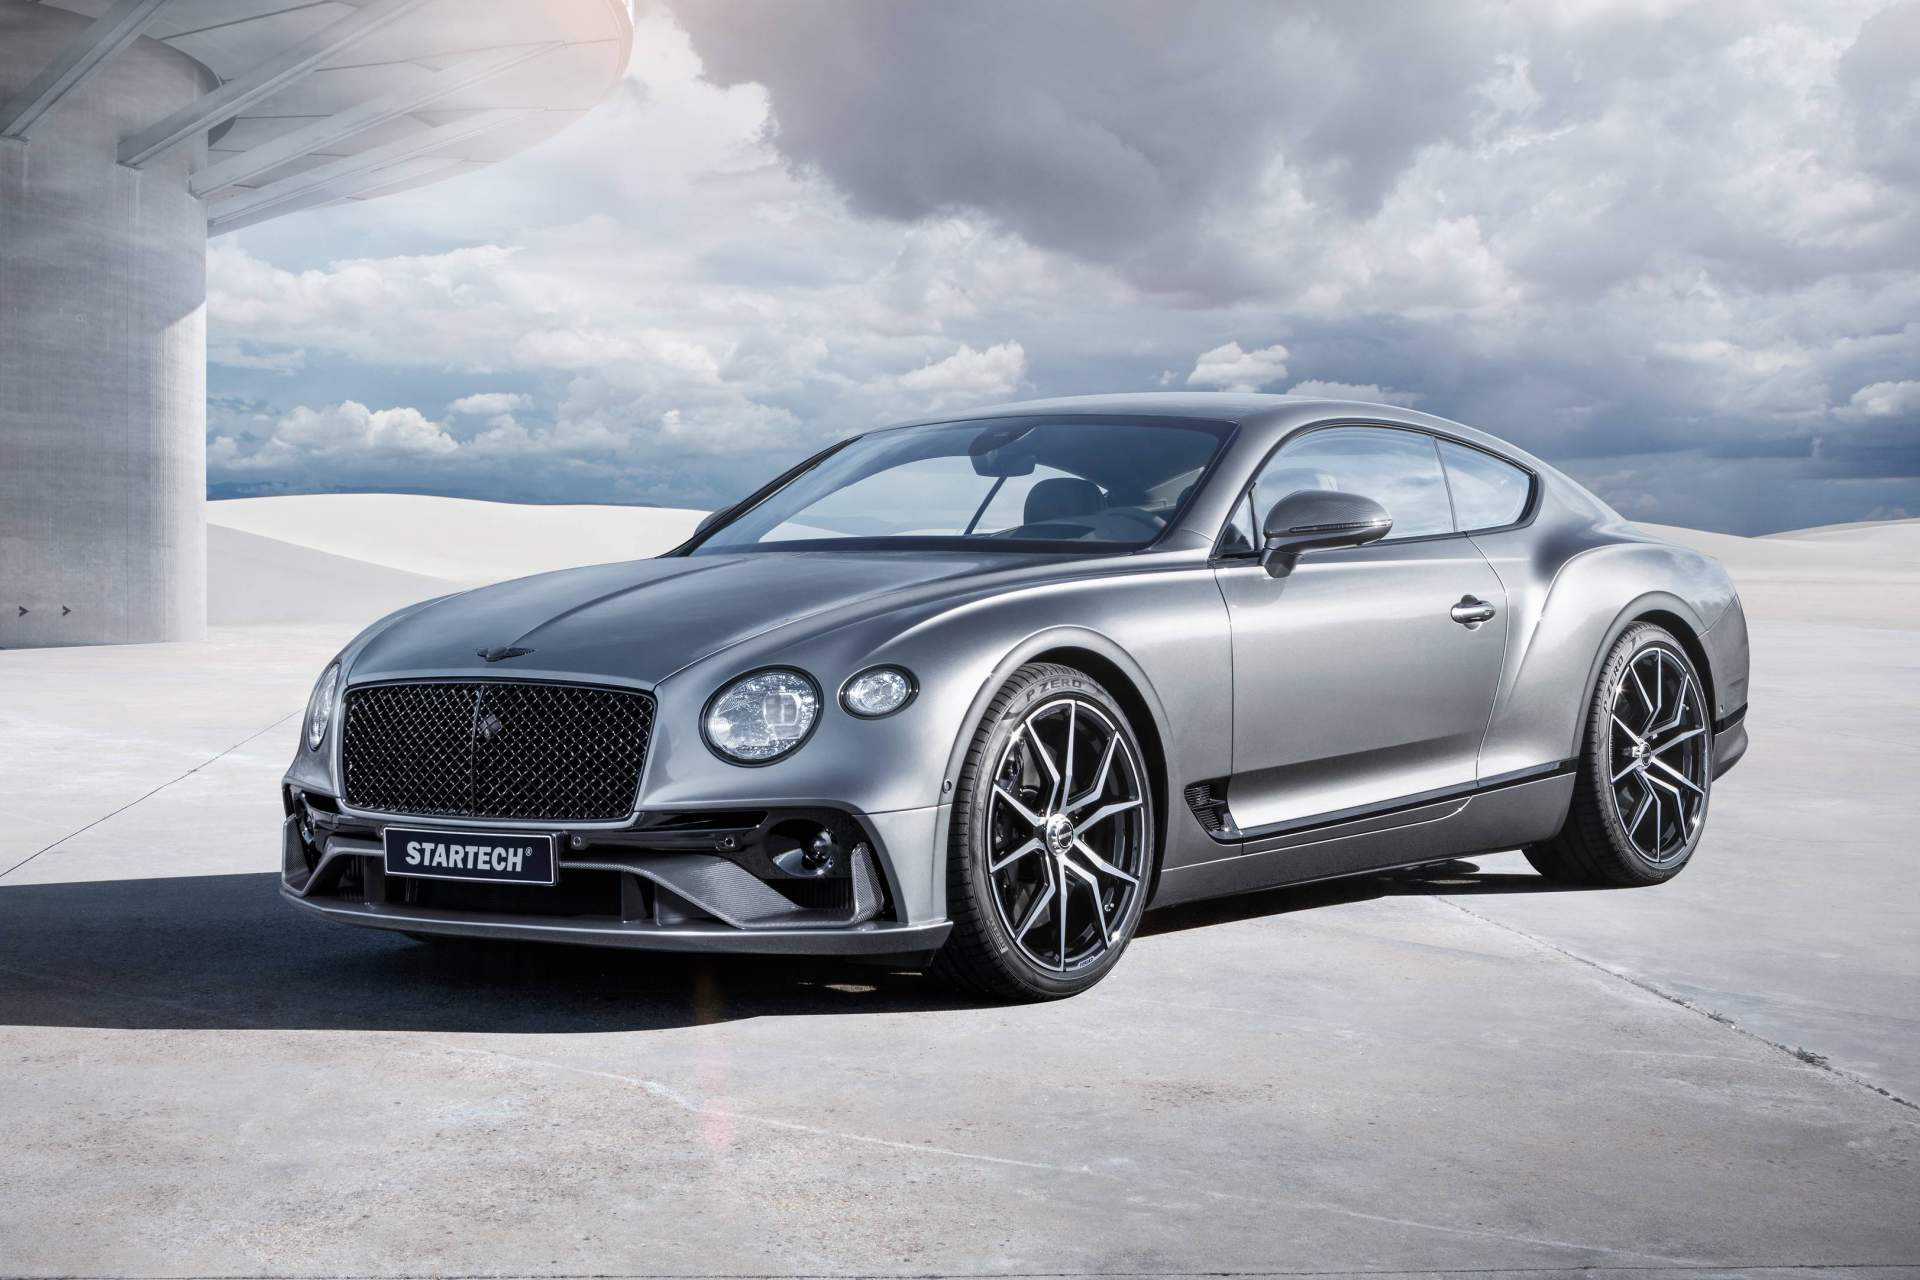 b3f76804-startech-bentley-continental-gt-1